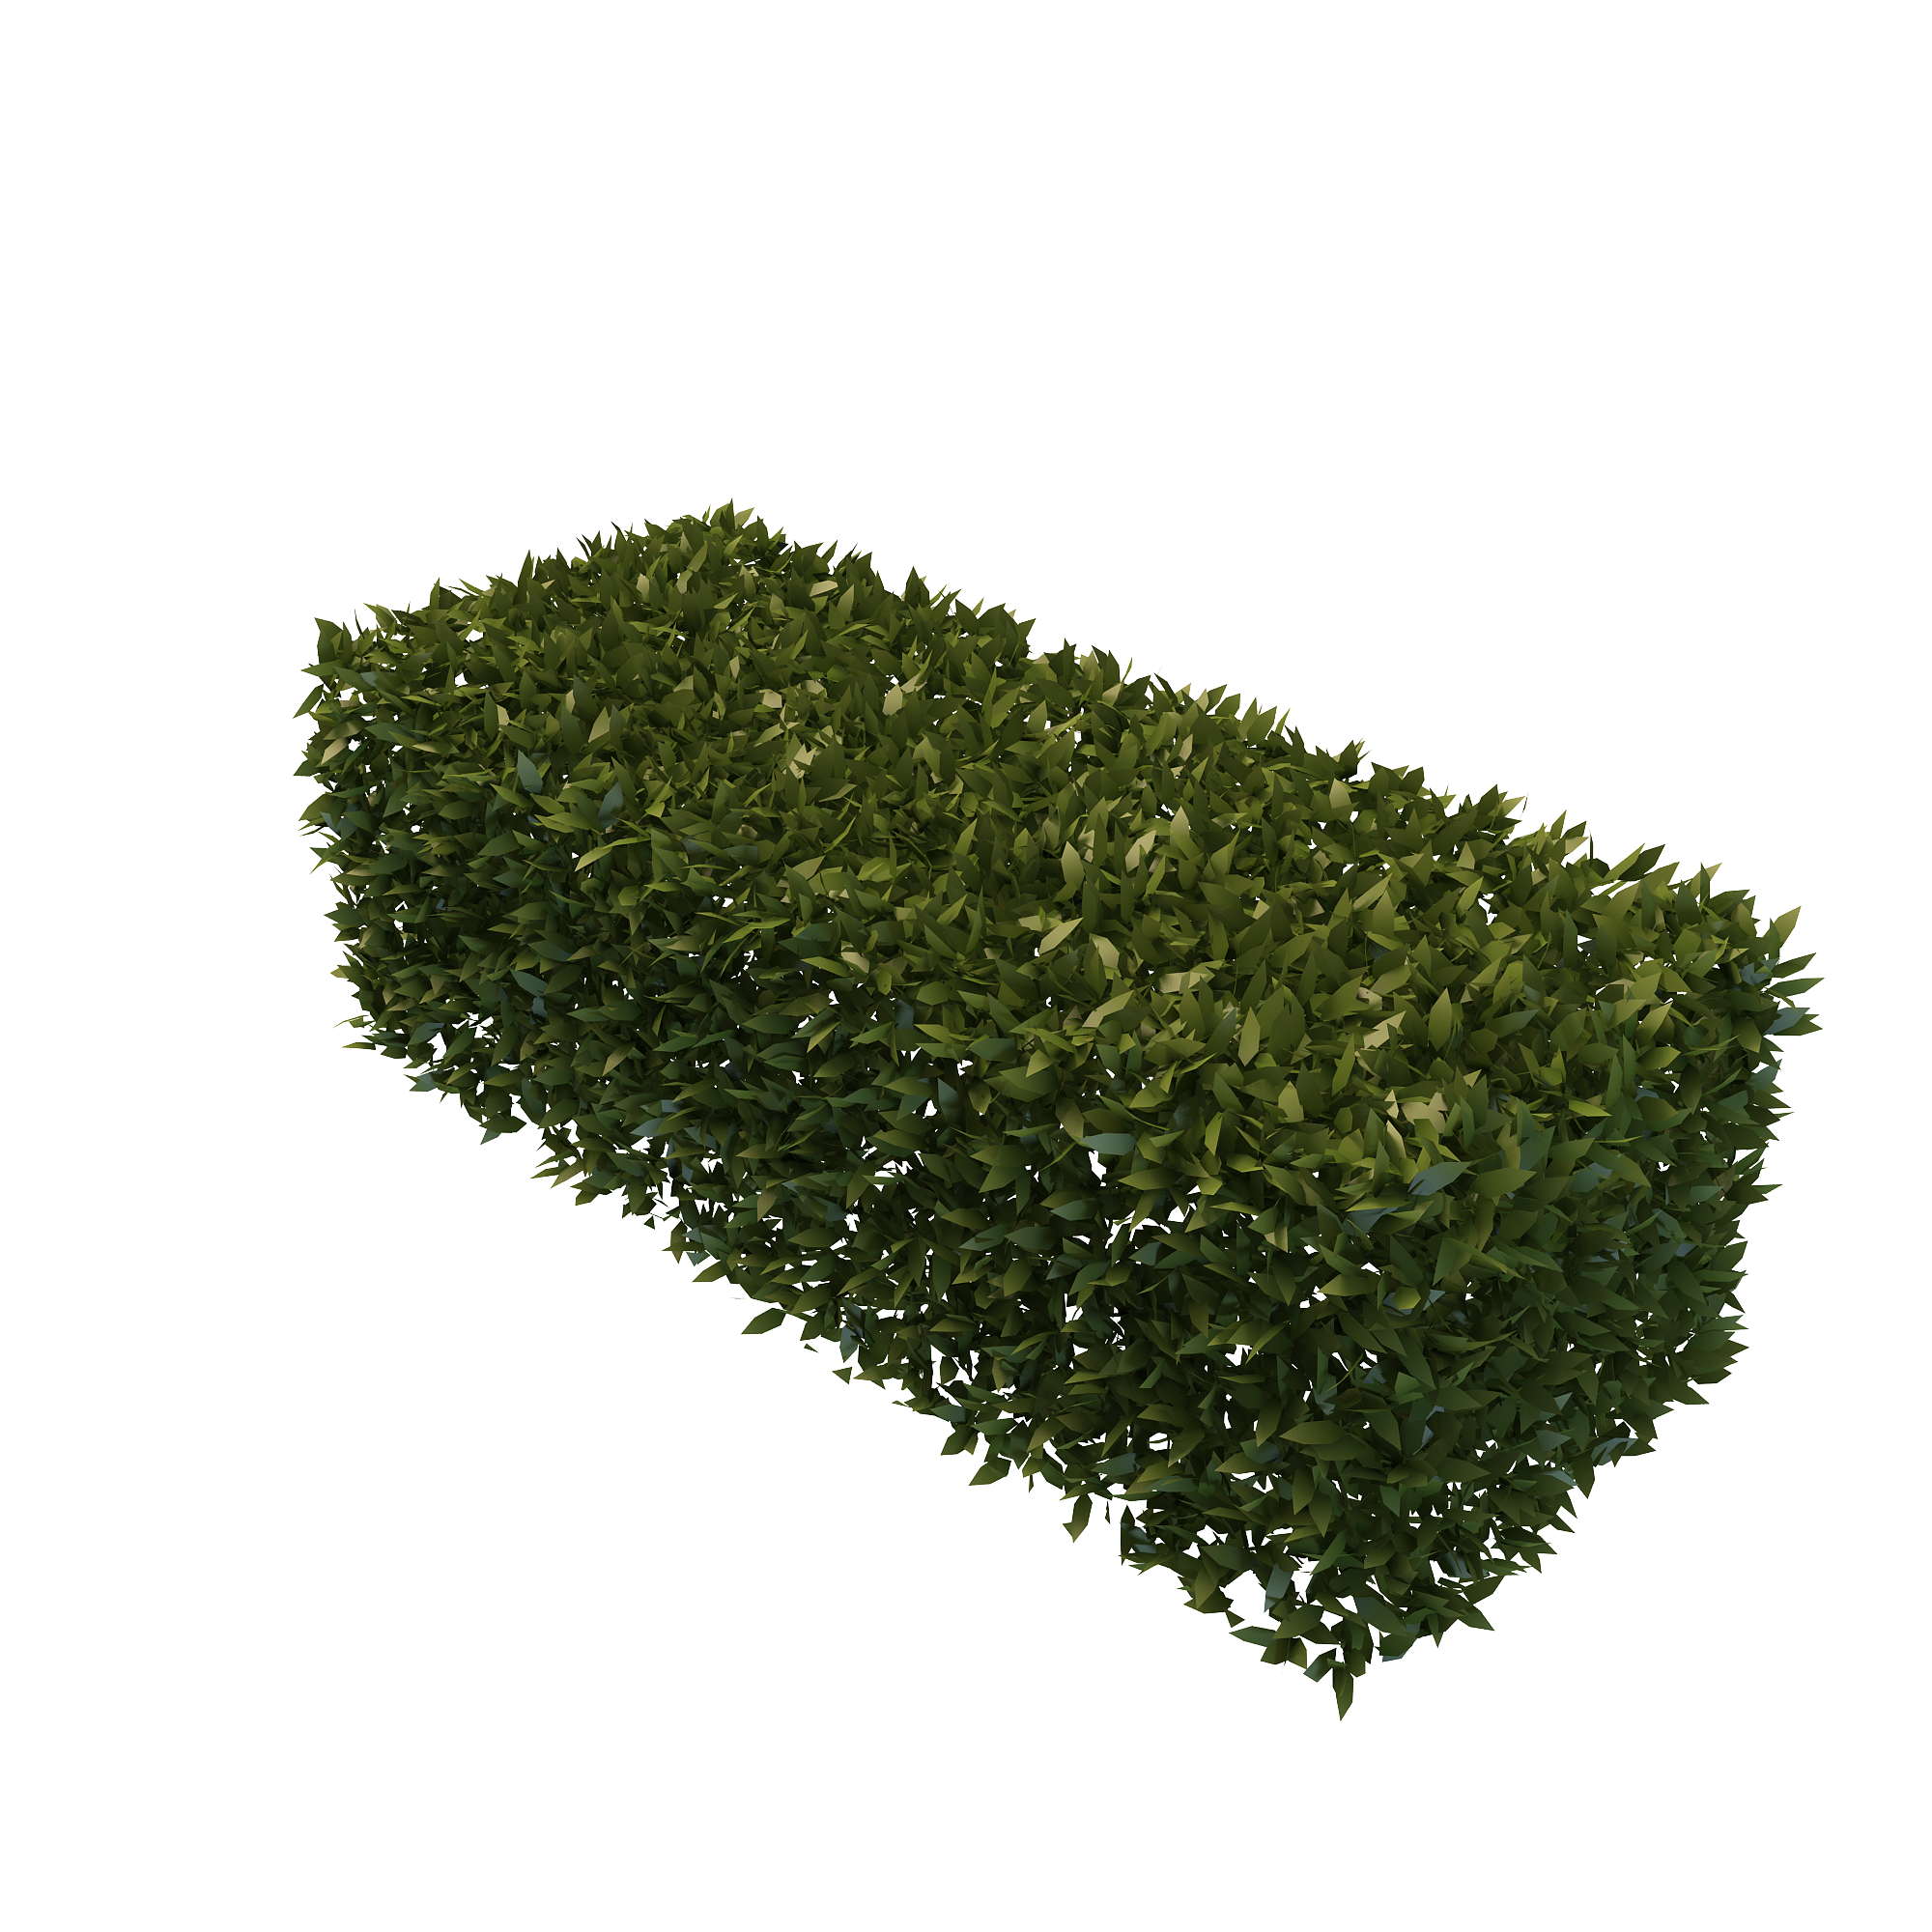 graphic free stock  hedge bush png. Vector bushes rectangle